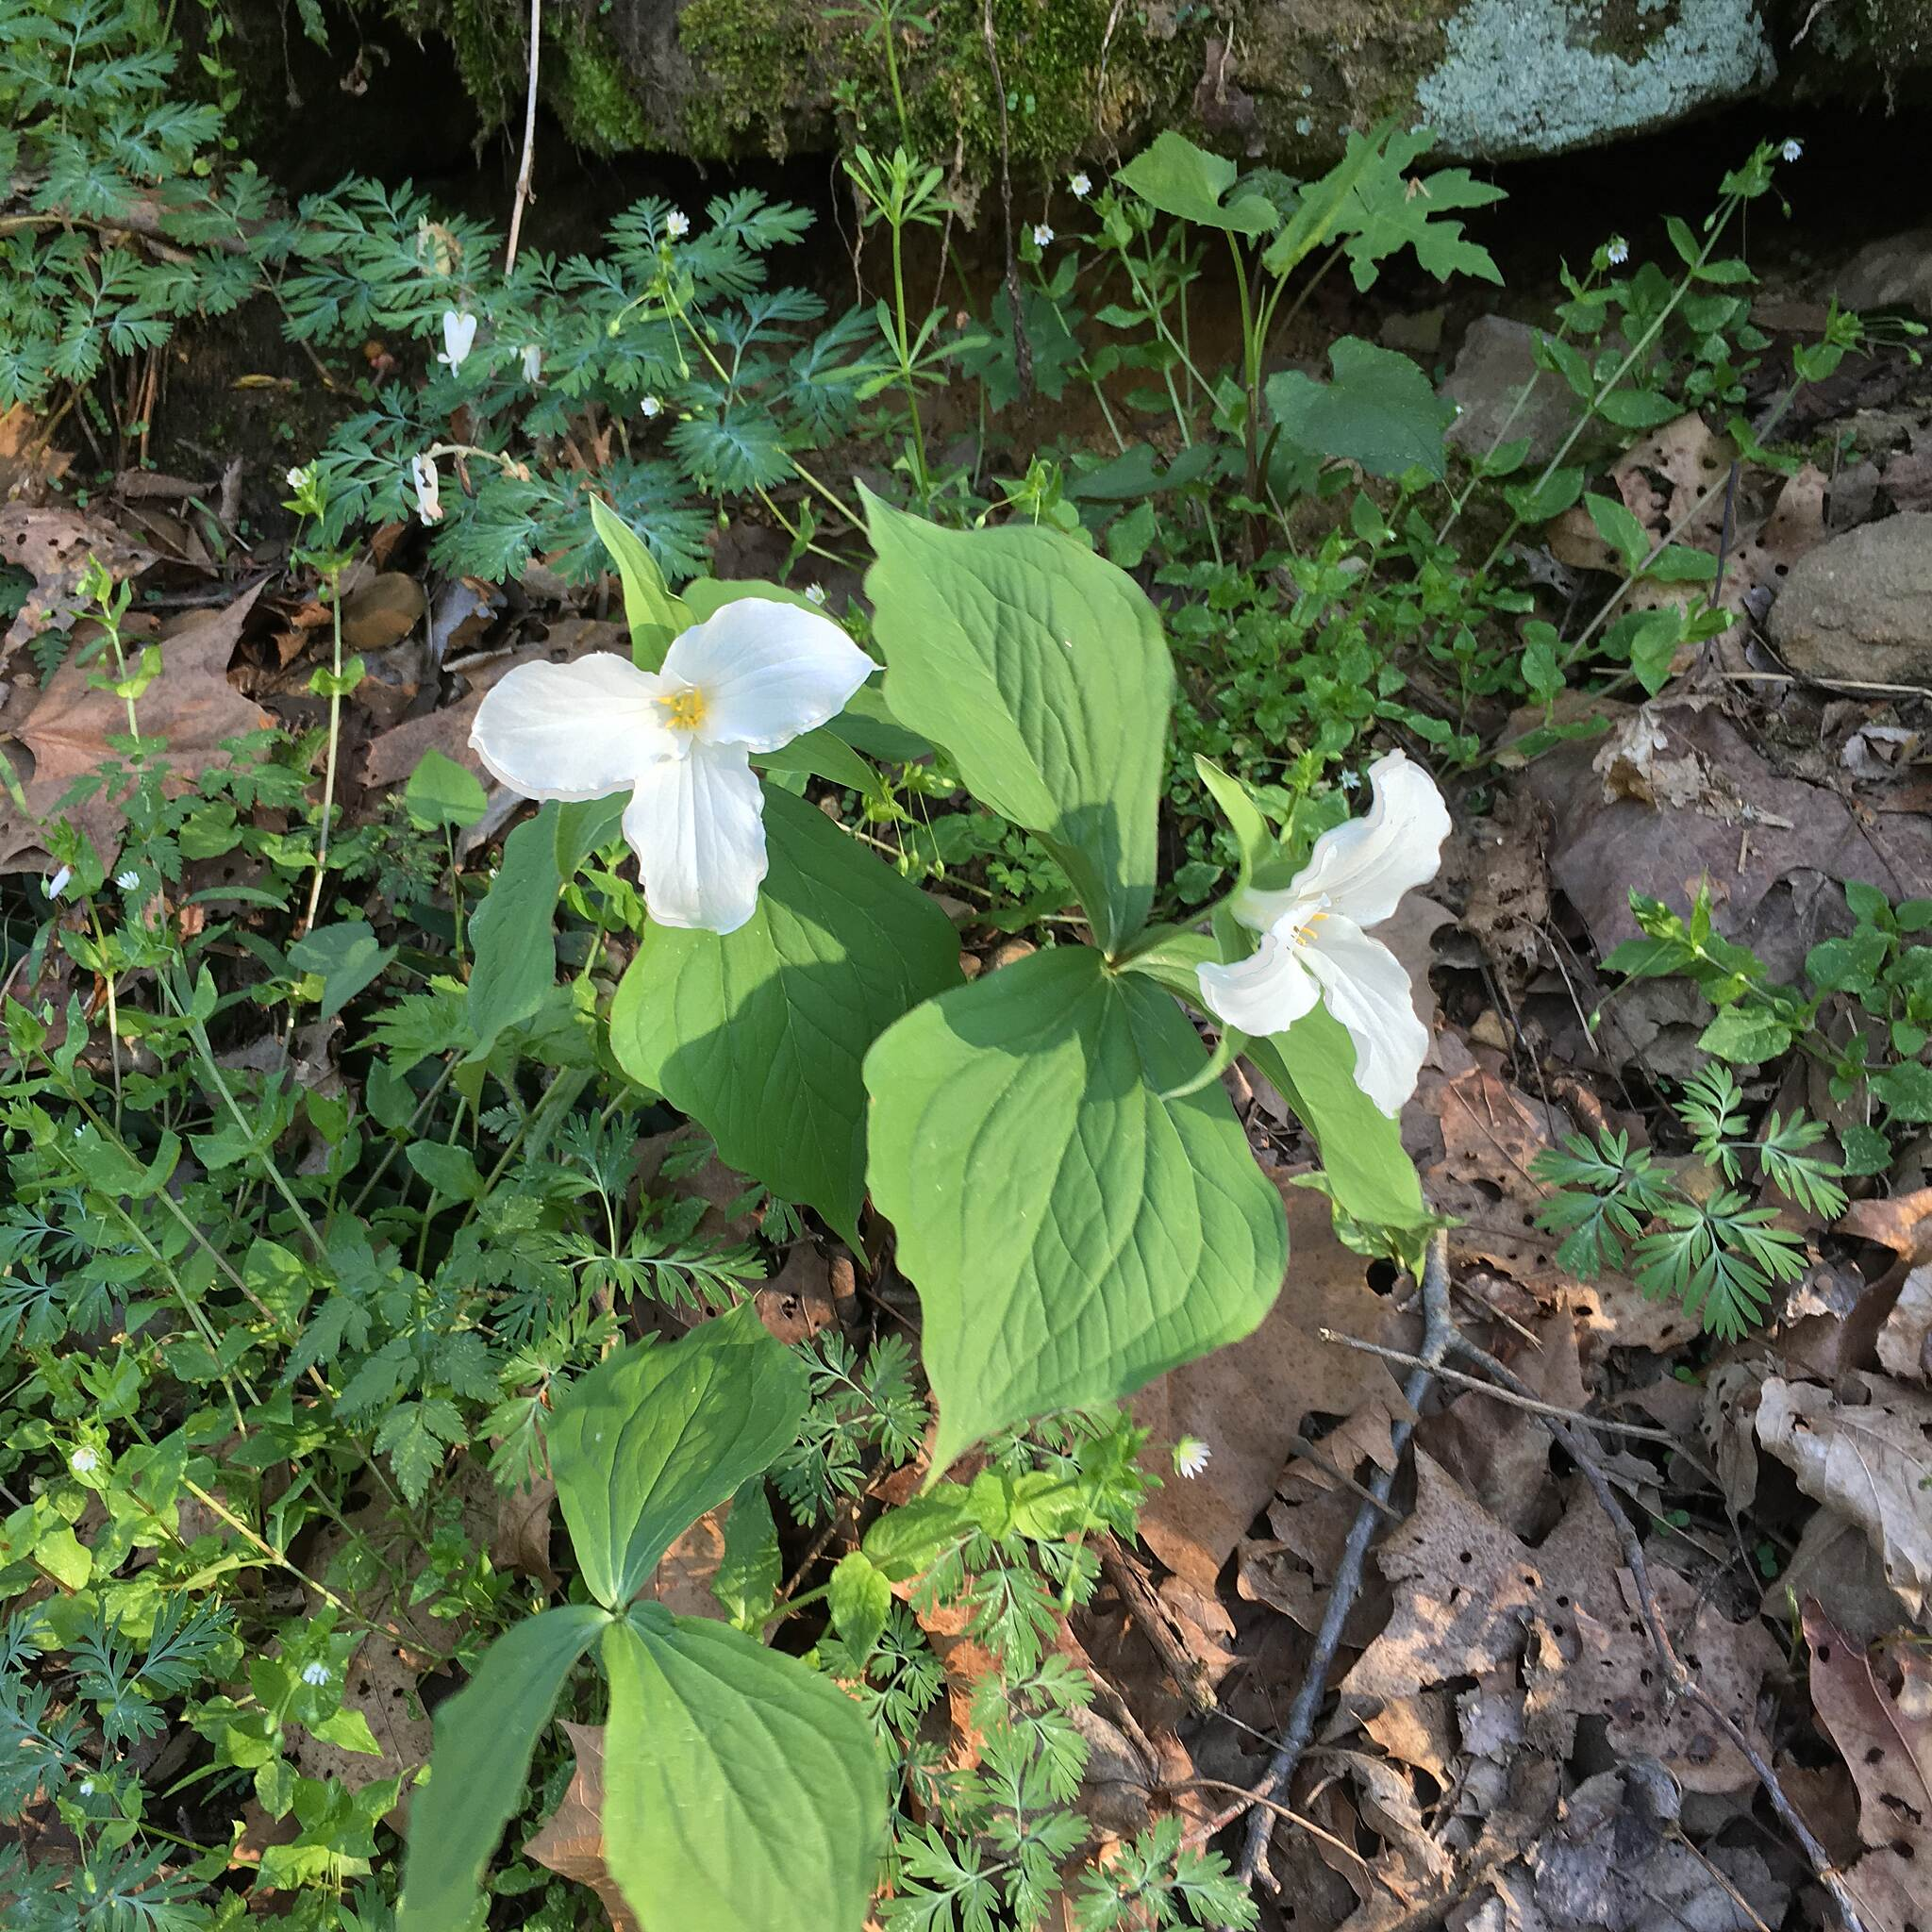 Blackhand Gorge Trail Eastern White Trillium Ohio's State wild flower as well as Canada's province of Ontario. Do Not Pick as it whole plant and will grow no more.